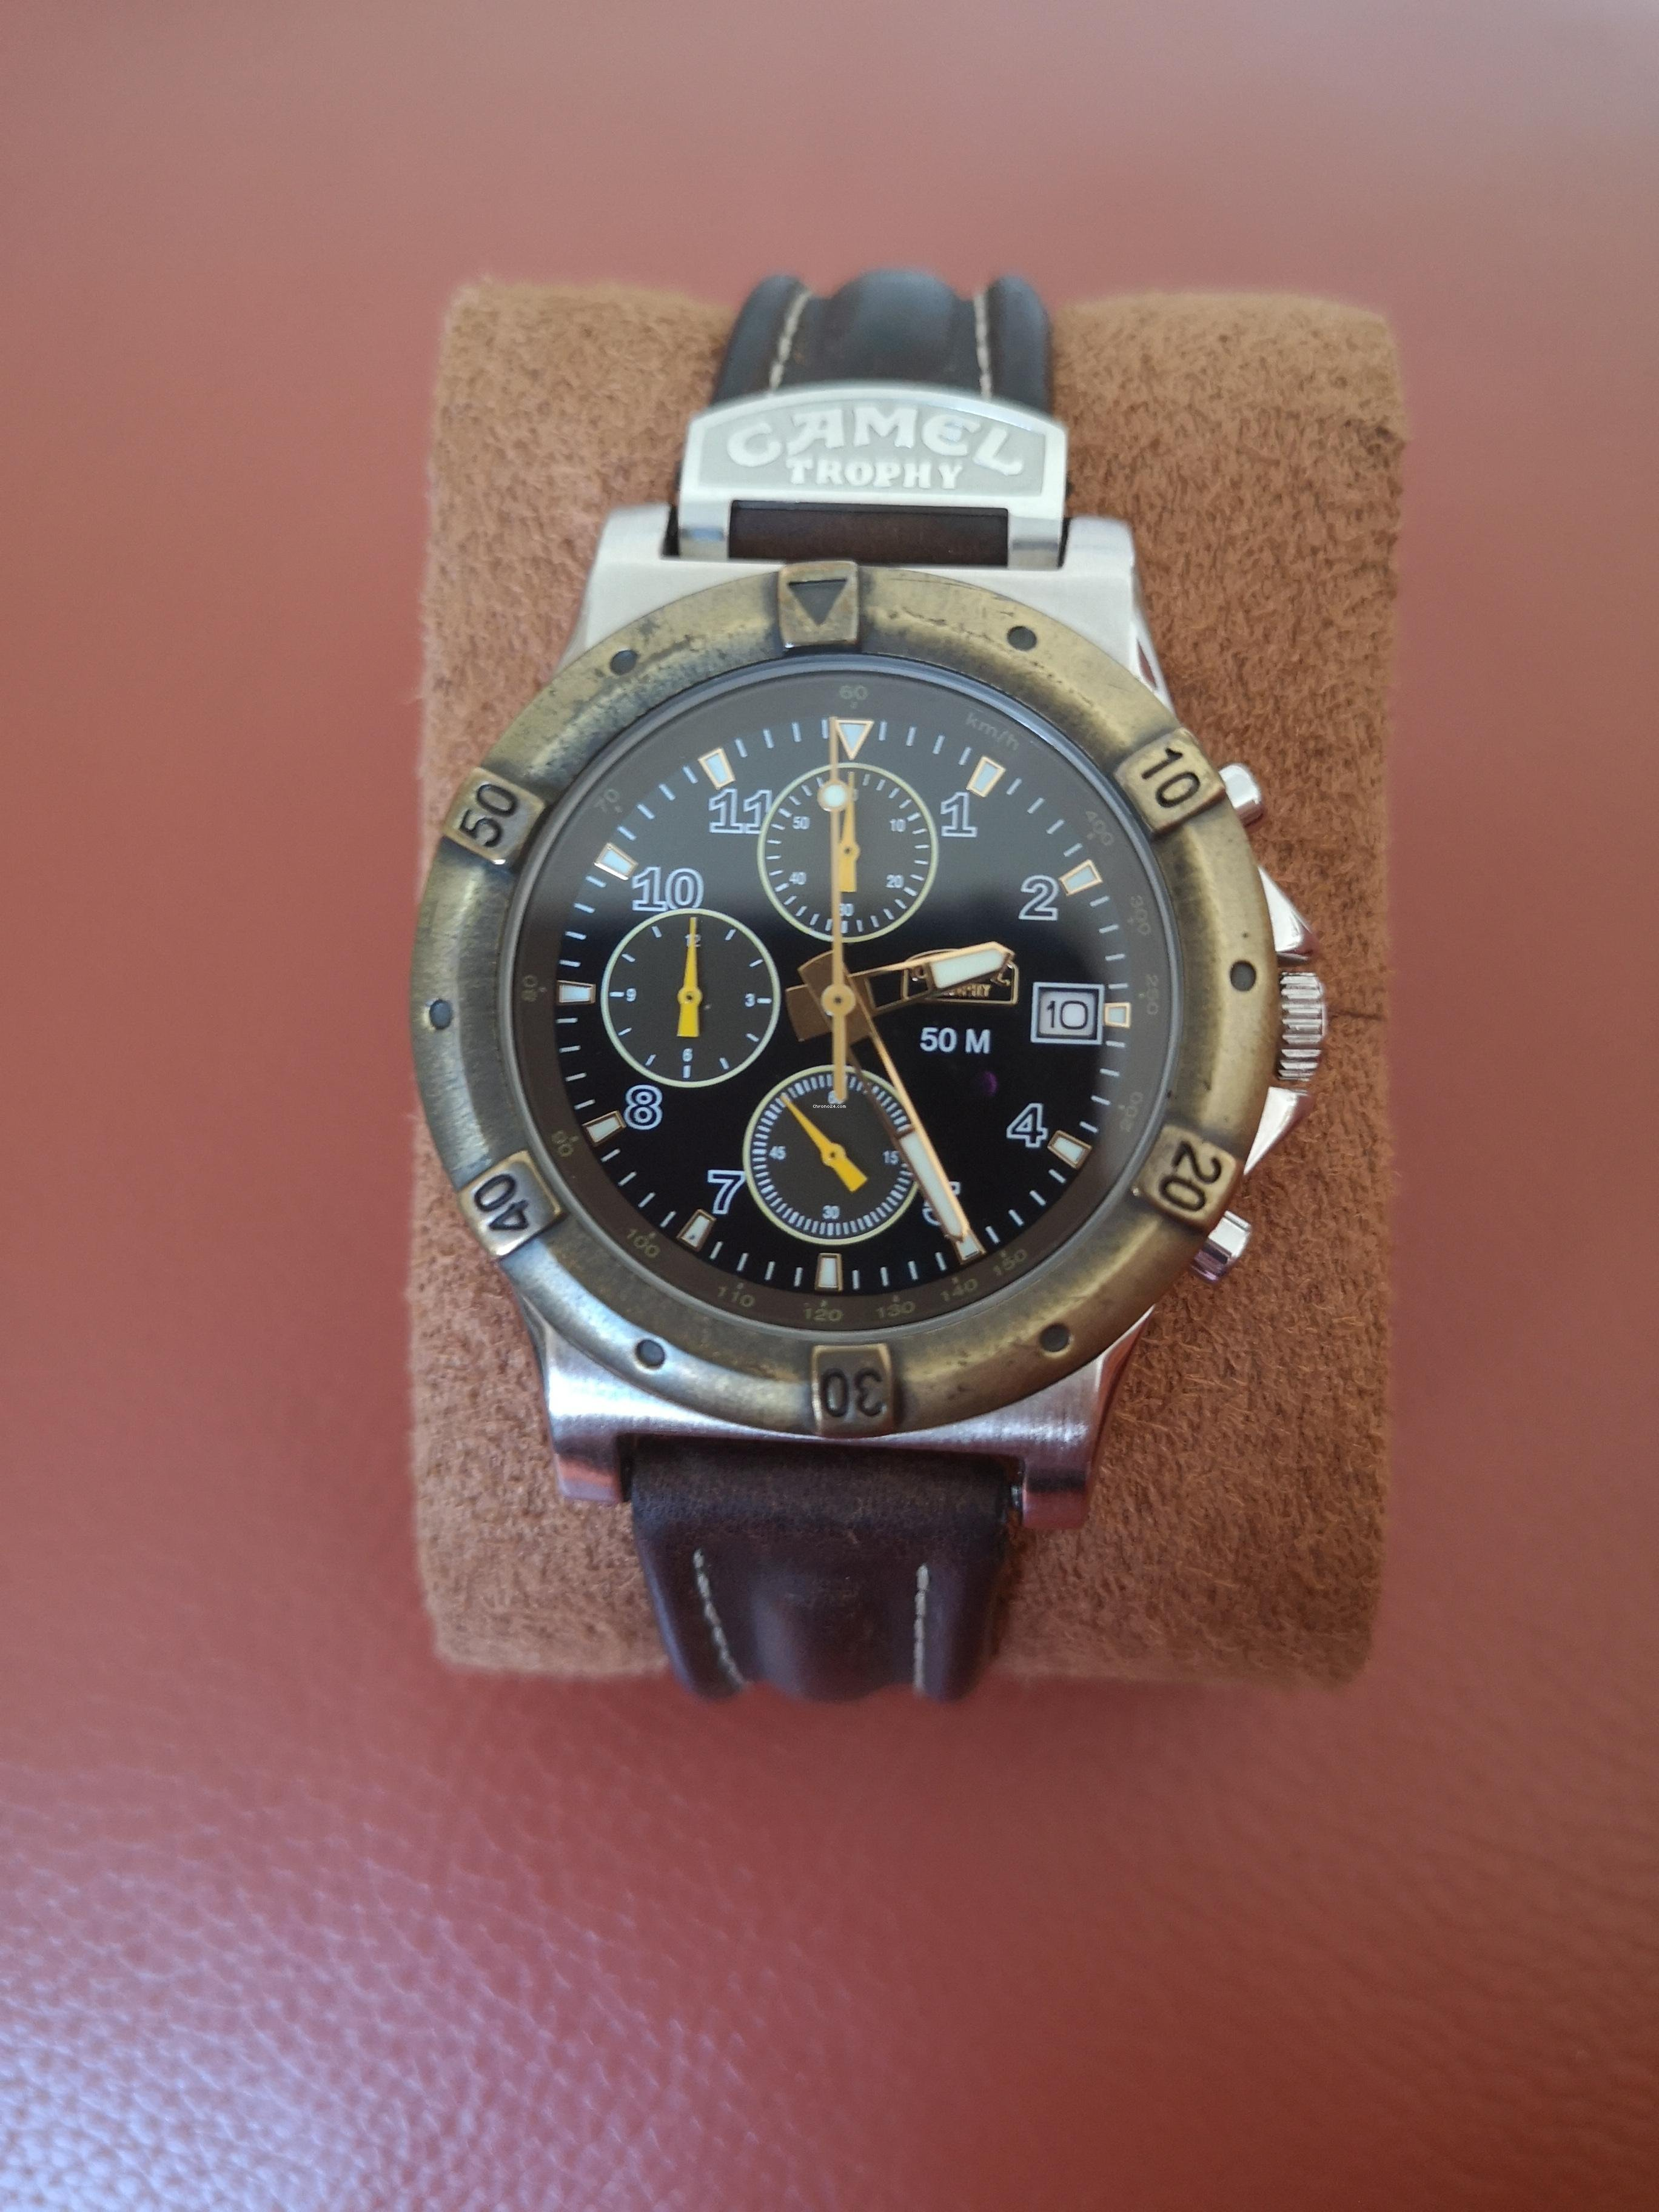 Hedendaags Camel Active Chrono for Rp. 1,931,117 for sale from a Private MW-03